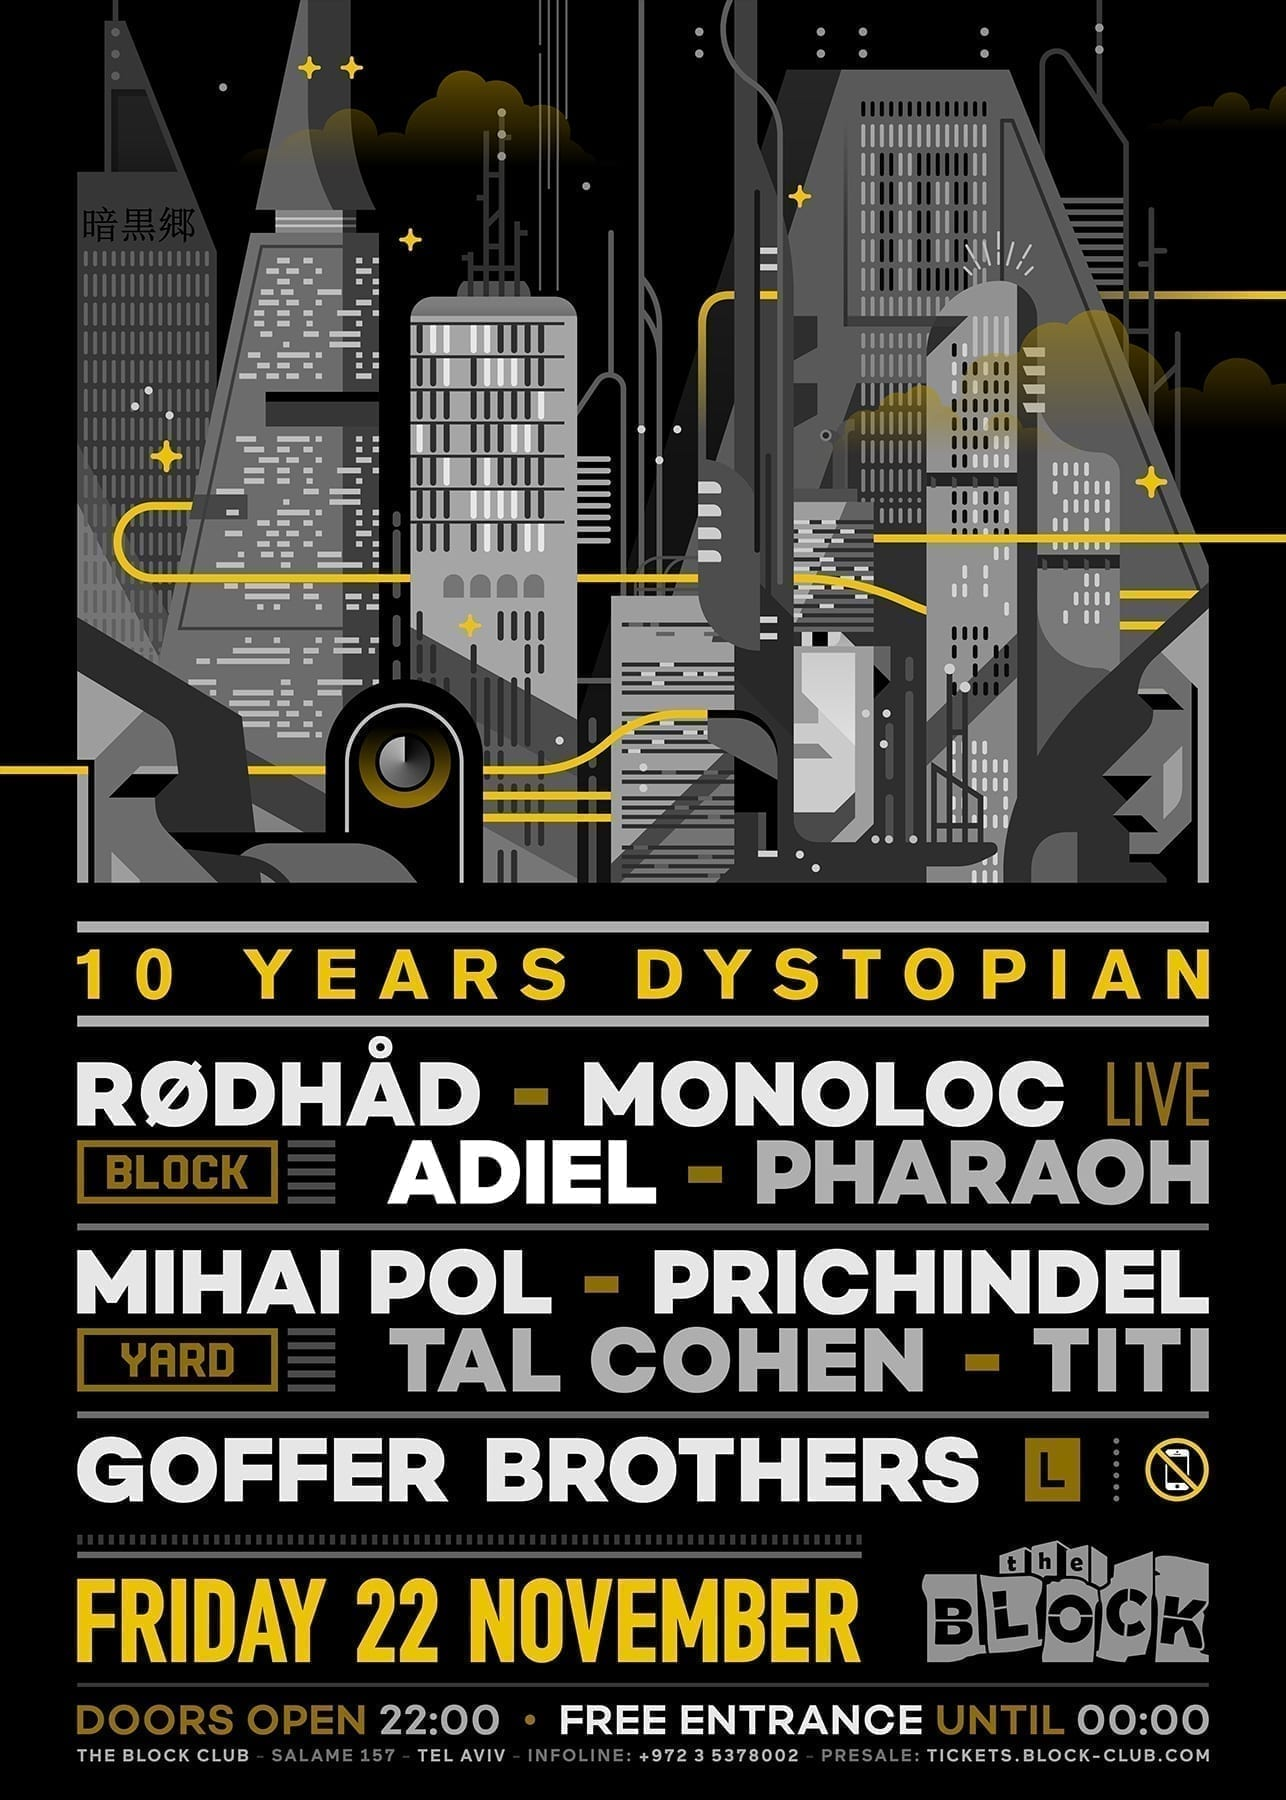 Ten Years Dystopian - Friday at the Dark Side of Town @ The Blcok